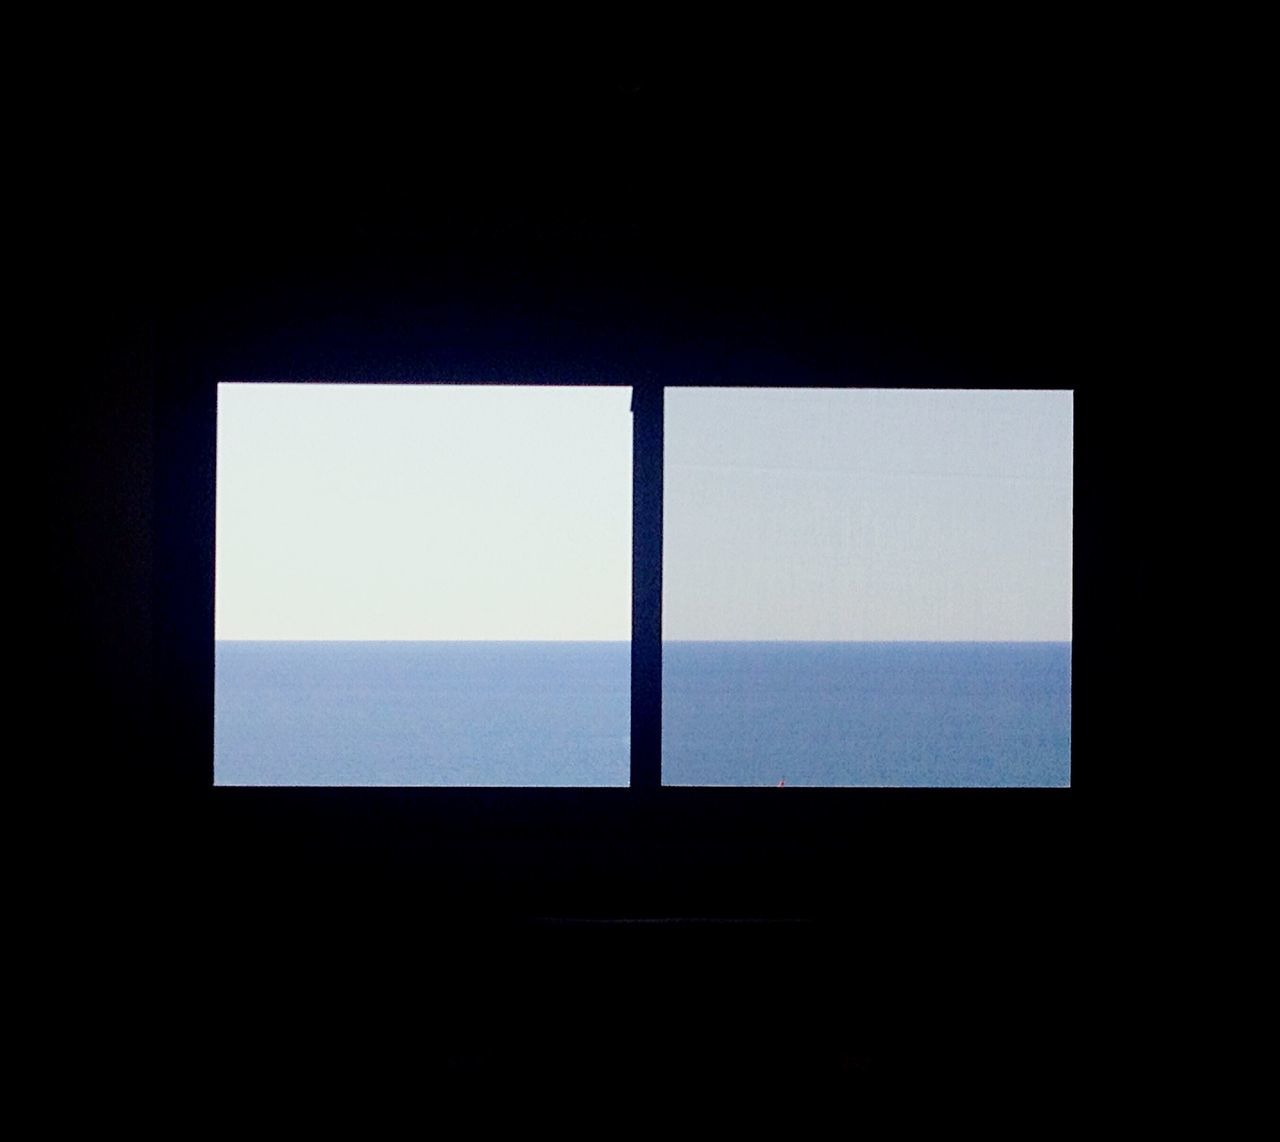 Rectangle Squares Shades Of Blue Blue From My Window Mediterranean Sea Lines And Shapes Shapes And Colour